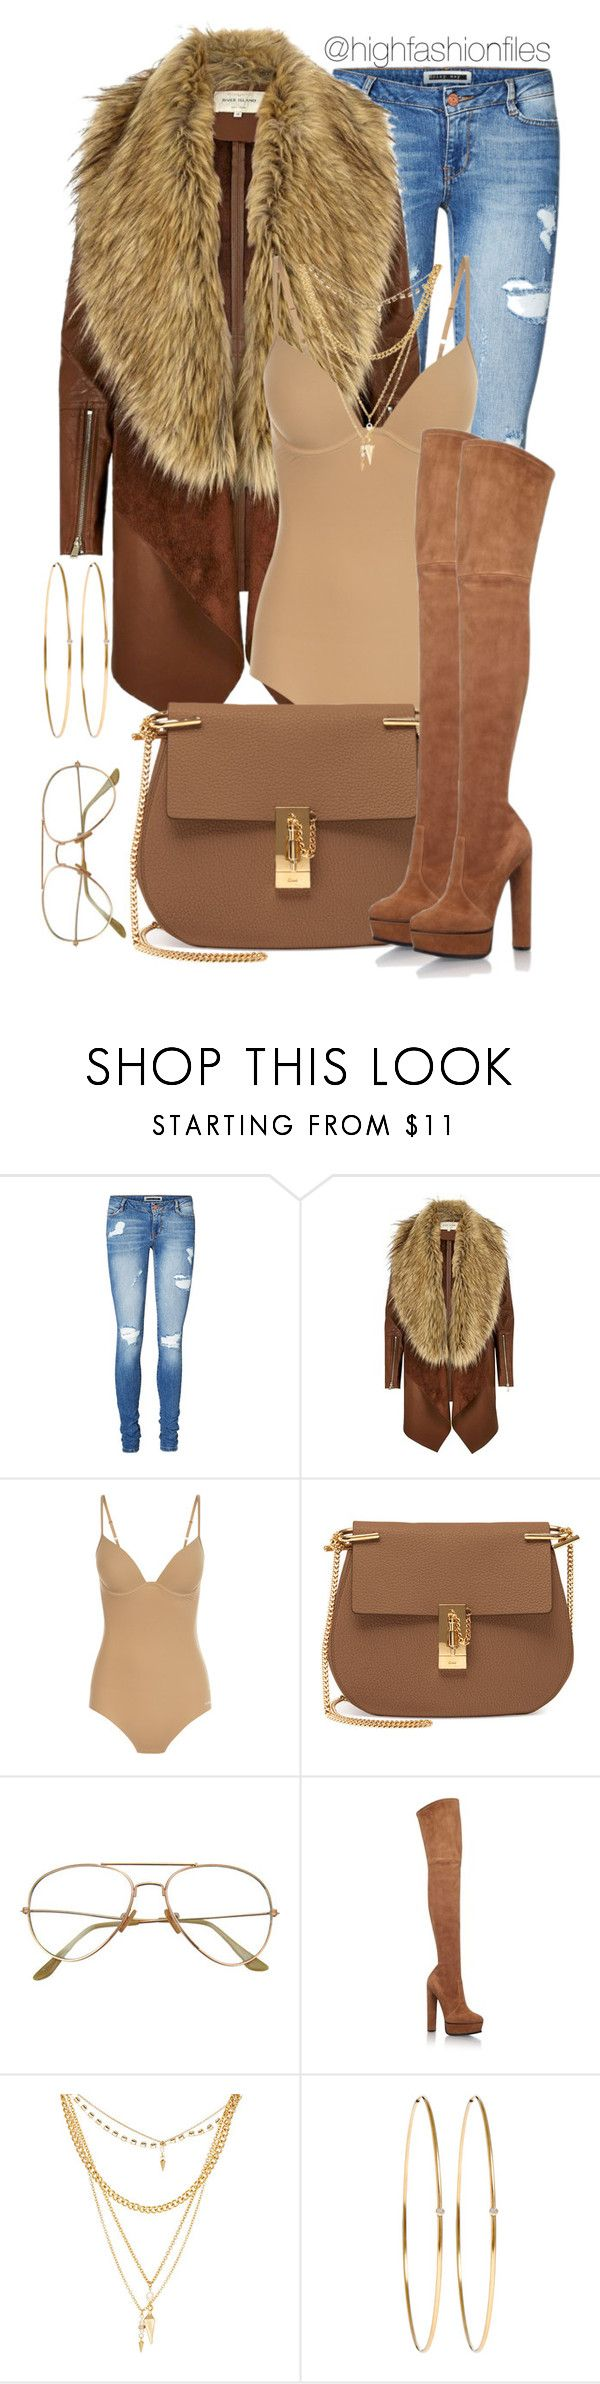 """Feeling Vintage"" by highfashionfiles ❤ liked on Polyvore featuring Vero Moda, River Island, Chloé, Casadei, Ettika, Jennifer Meyer Jewelry and vintage"